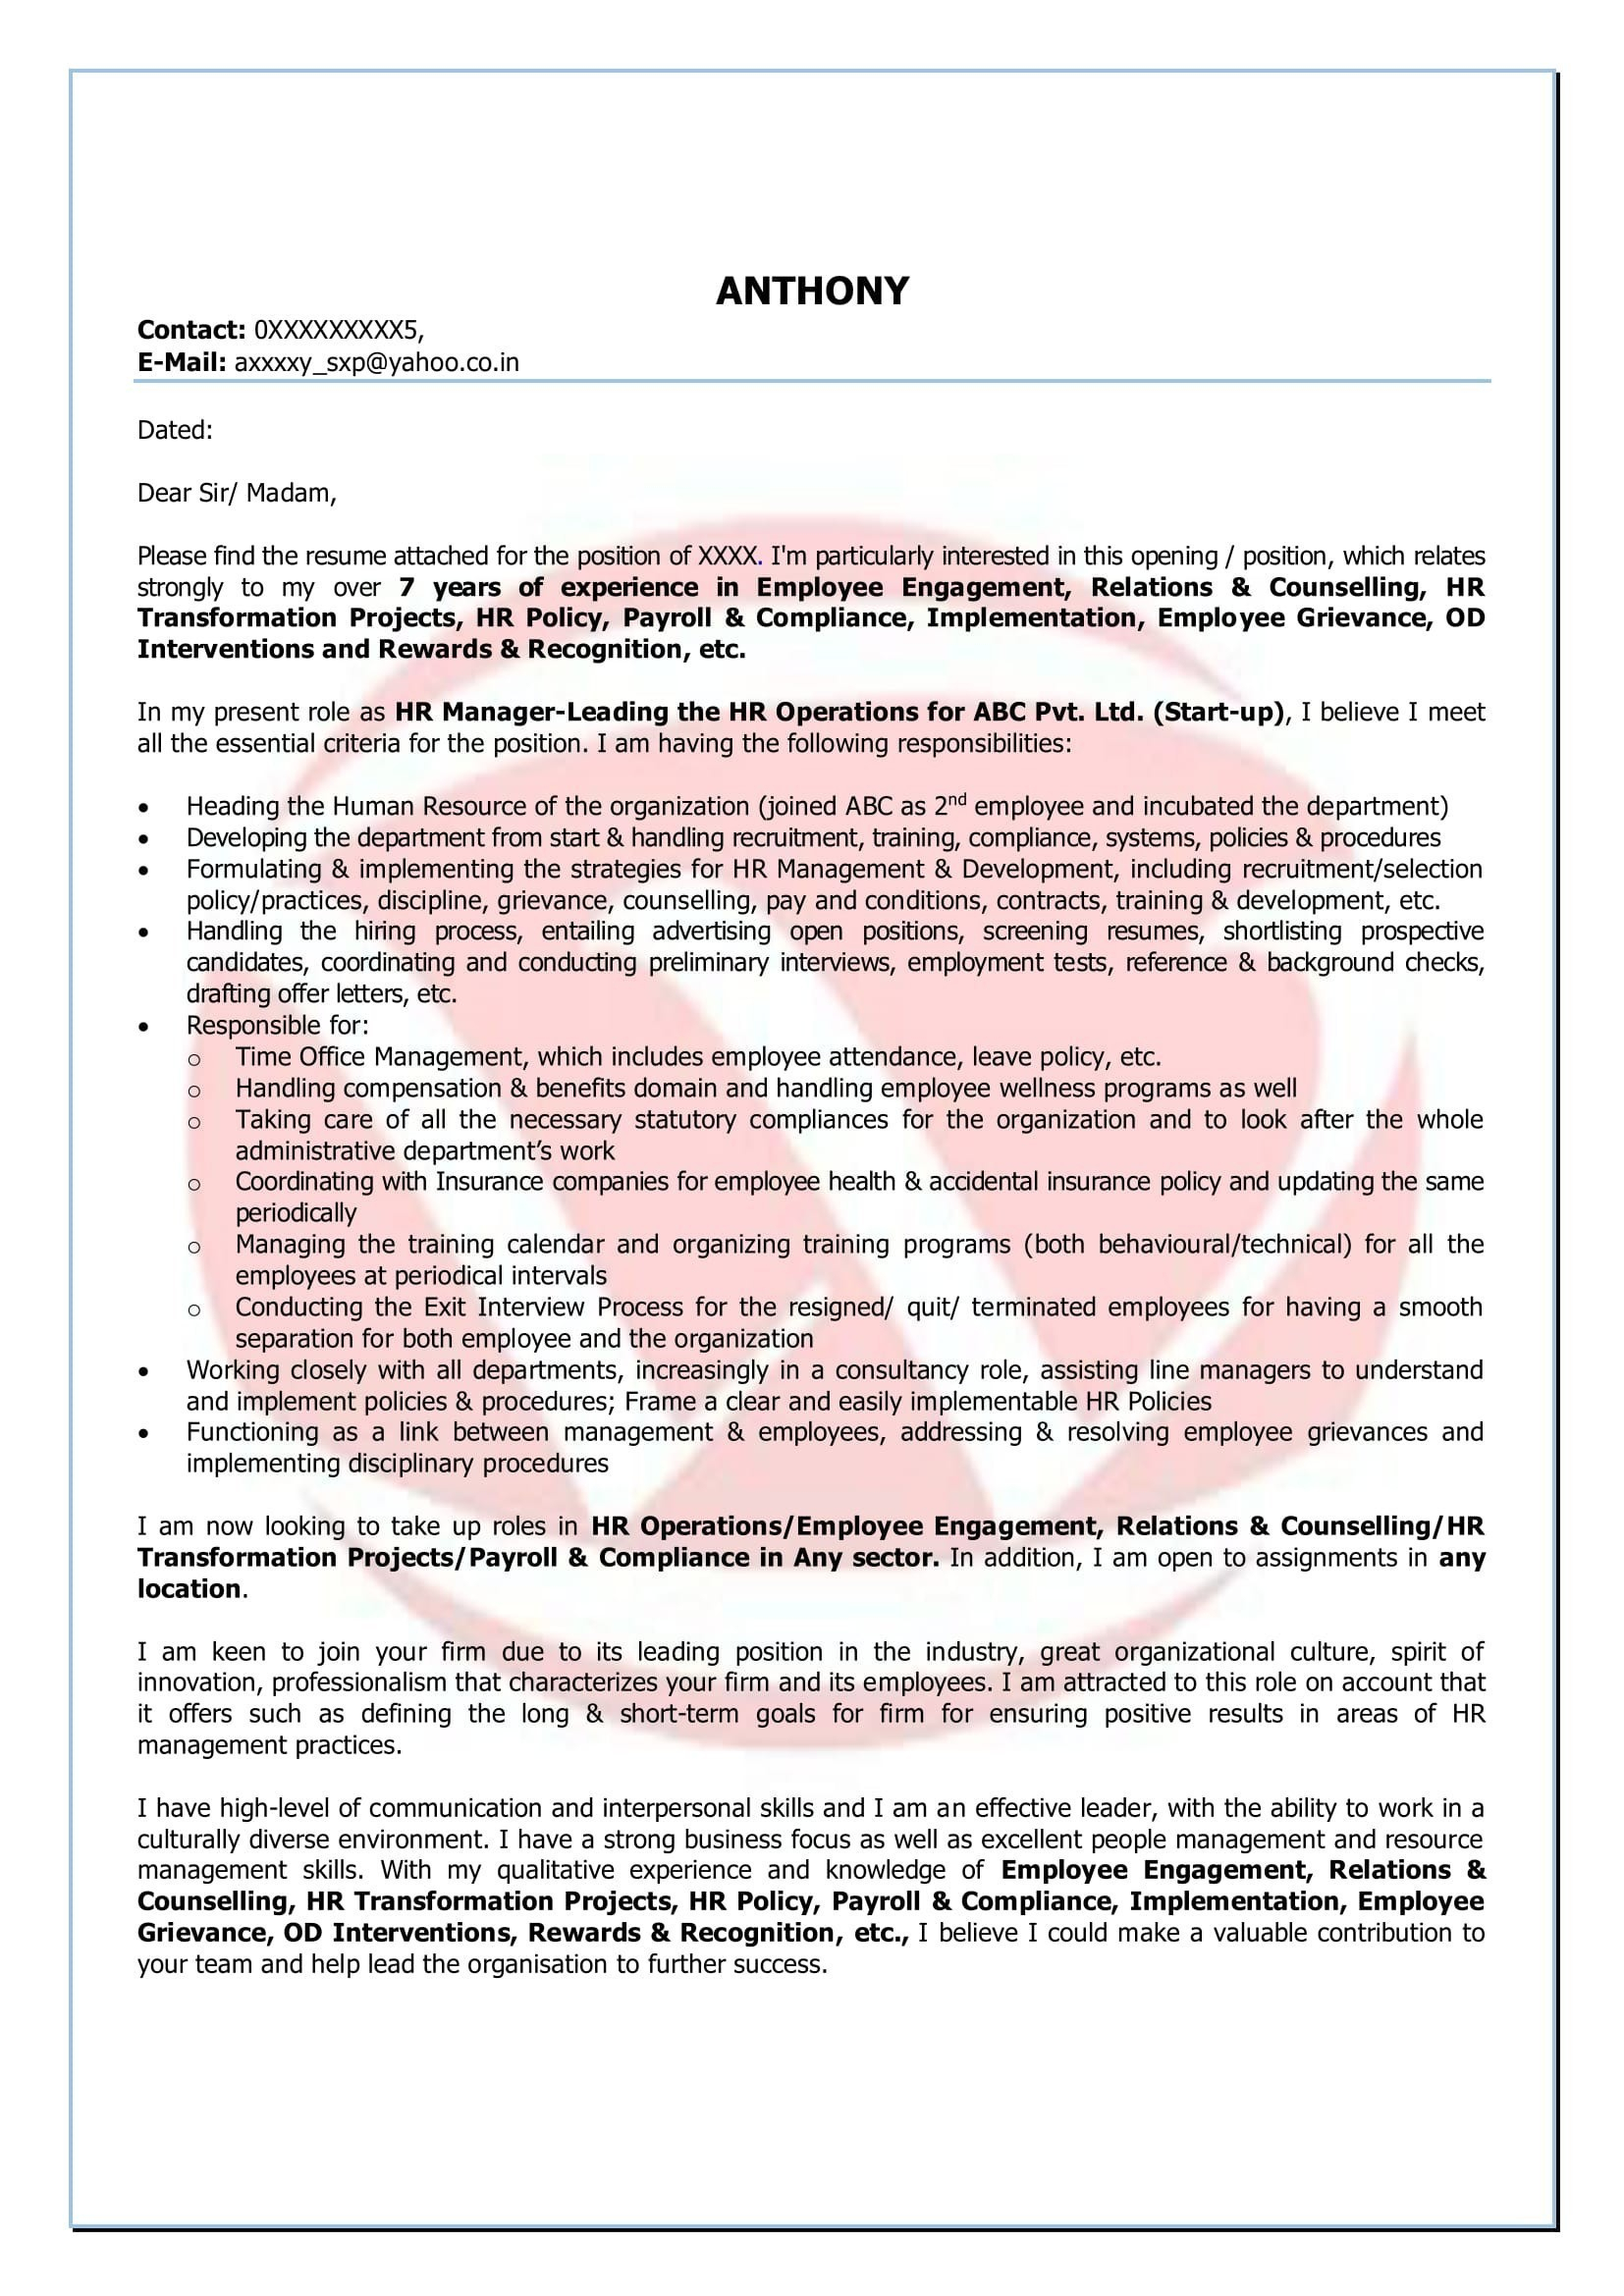 sample letter of disagreement template Collection-sample letter of disagreement template 6-r